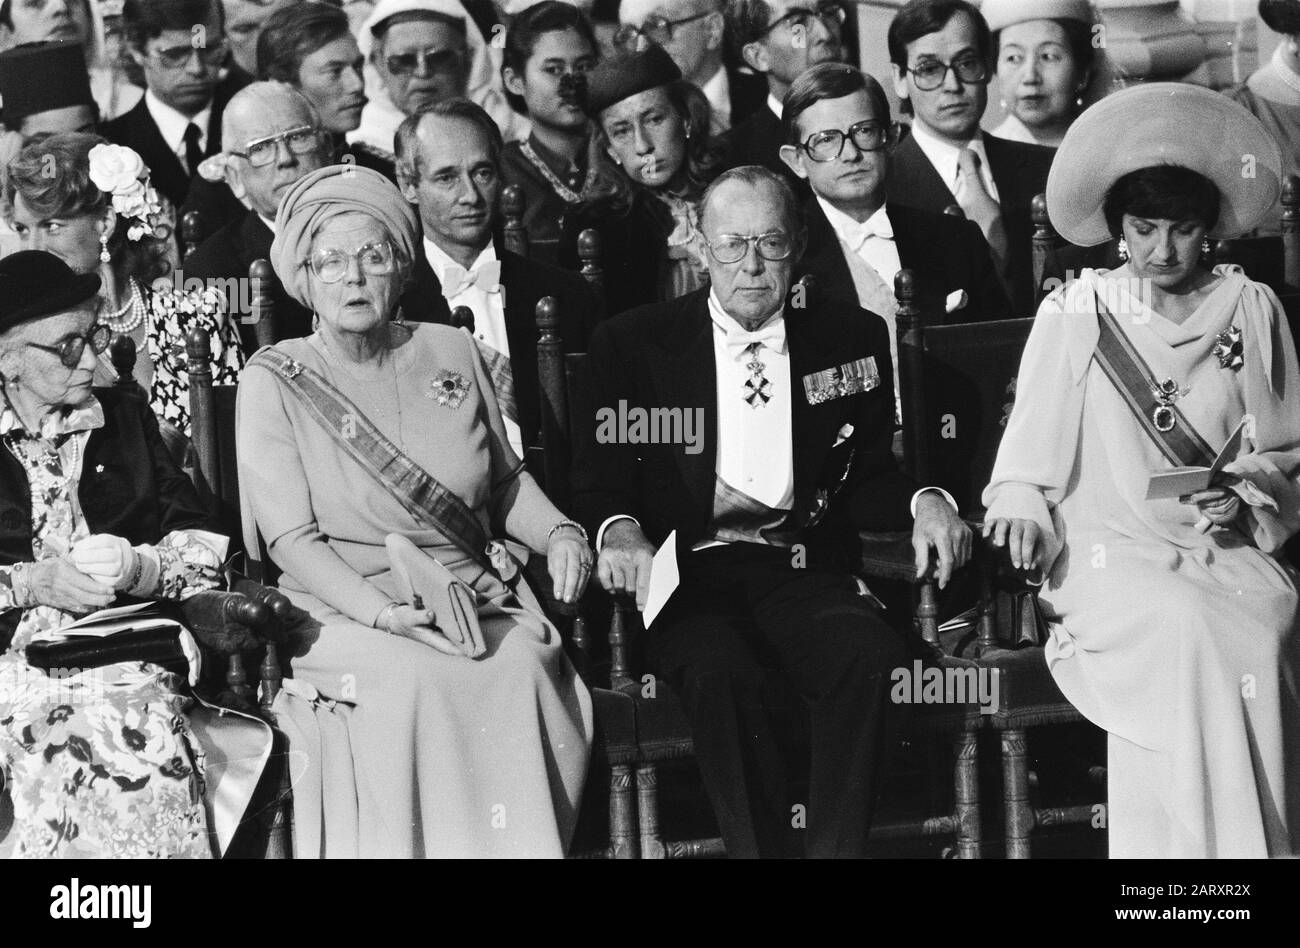 Throne change April 30, inauguration in New Church; in the foreground Mrs. van Amsberg, inses Juliana, Prince Bernhard and Princess Margriet Date: April 30, 1980 Keywords: inaugurations Personal name: Bernhard, prince, Juliana, princess, Margriet, princess Stock Photo